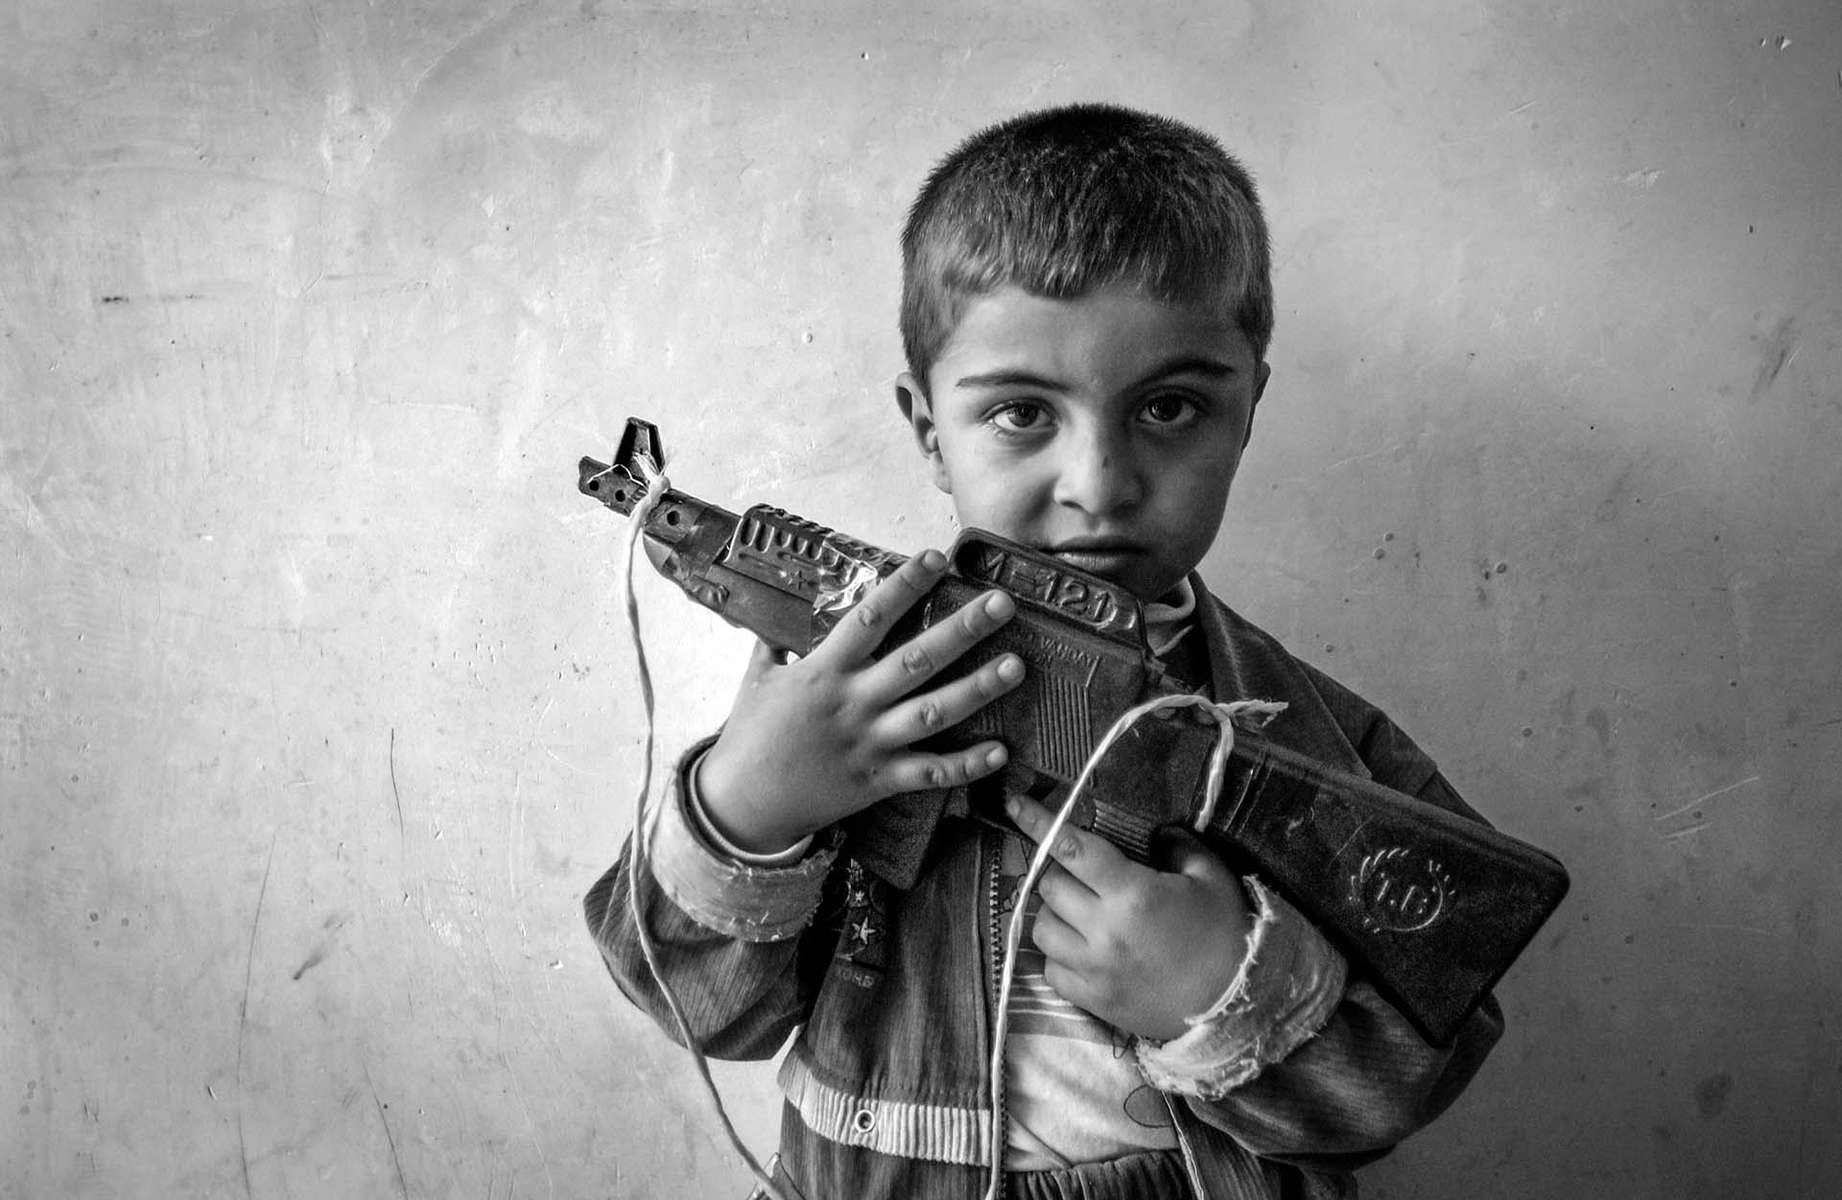 4-year-old Bawan Ahmad Salih holds his toy AK-47 assult rifle at his uncle's house in border town of Kalar Monday, April 7, 2003. AK is weapon of choice for Kurdish male, and they can be seen everywhere, even at toy store.